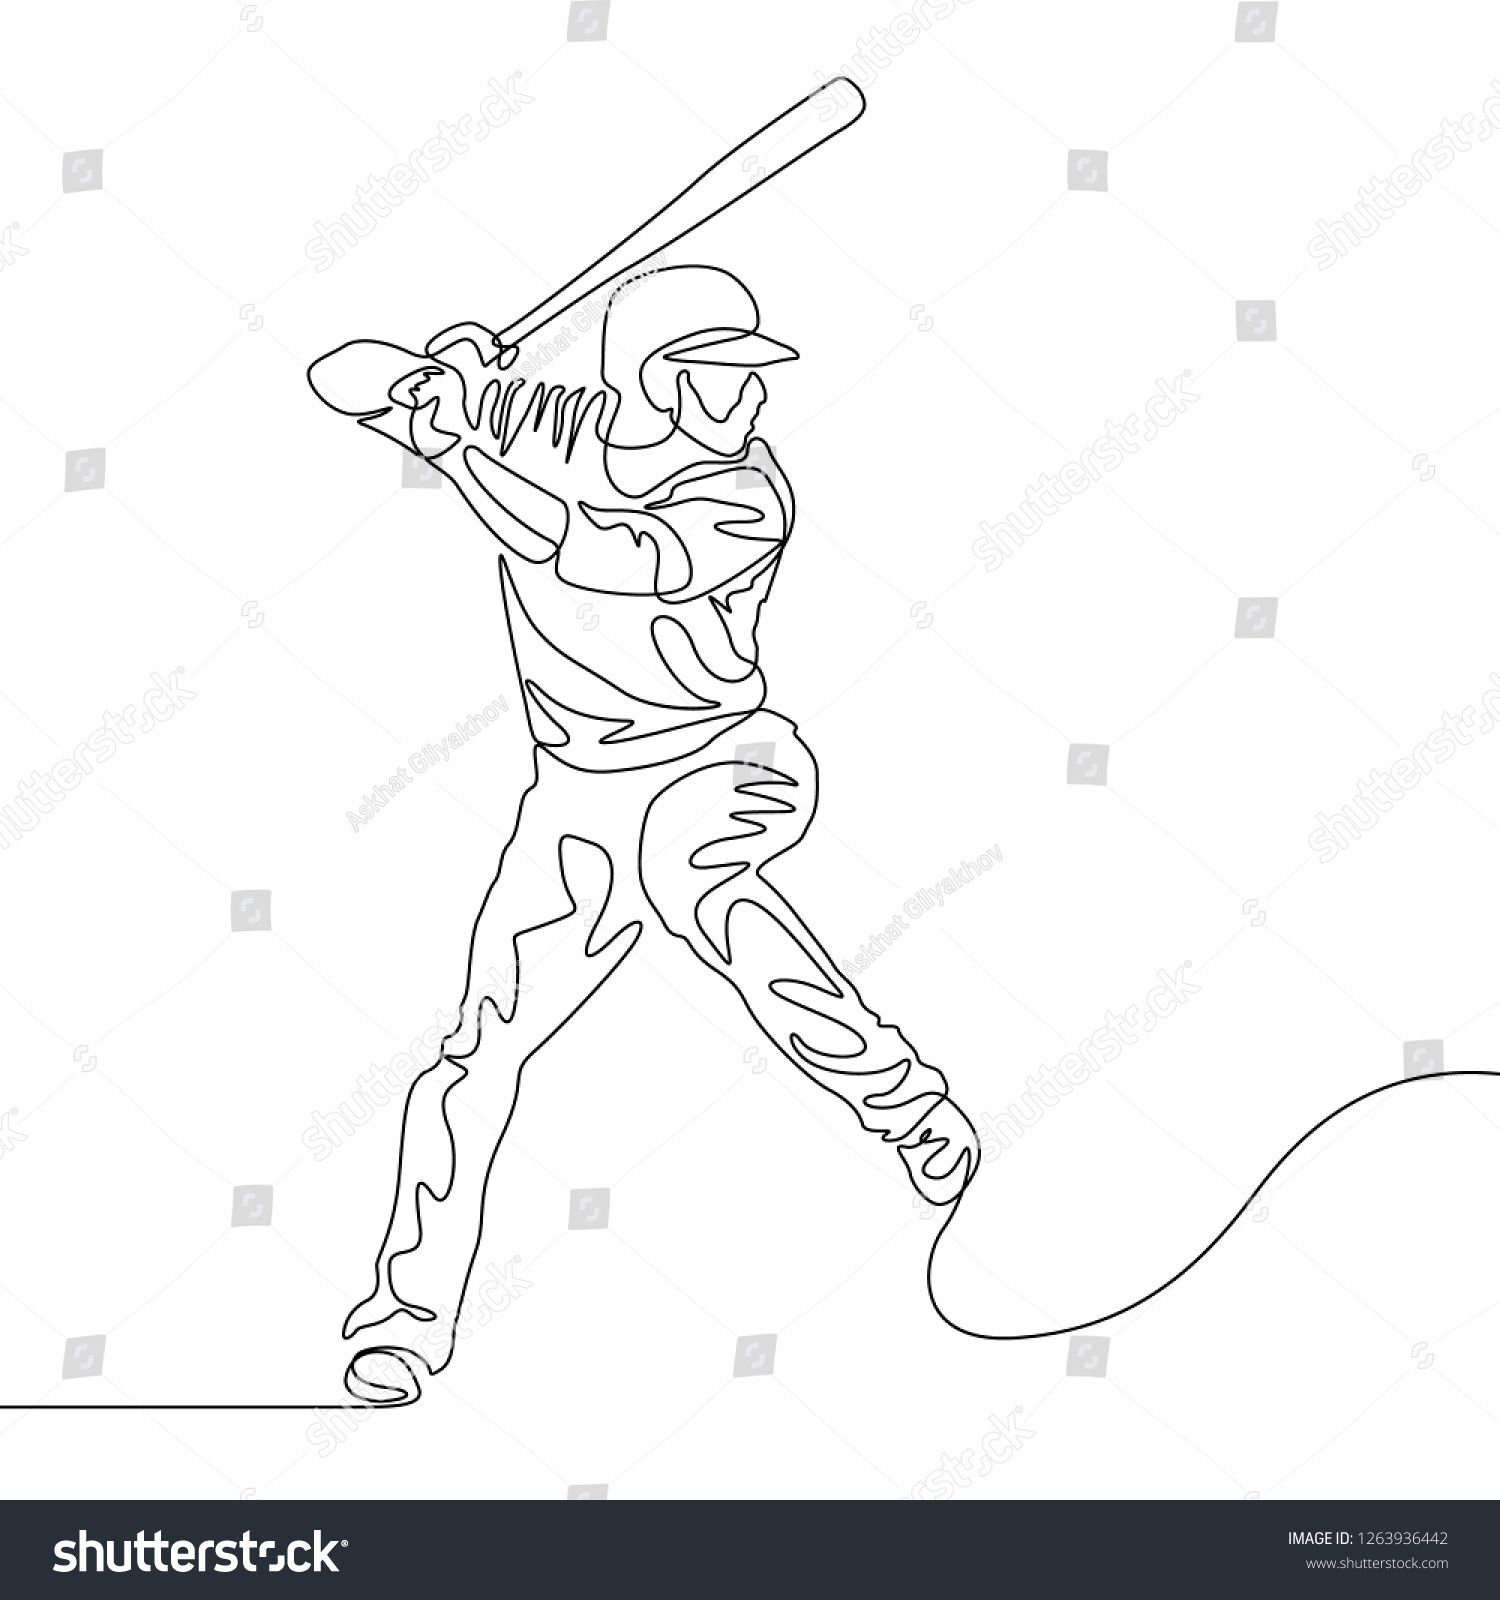 Continuous One Line Baseball Player Batter Going To Hit The Ball Baseball Theme Sport Baseball Drawings Line Drawing Continuous Line Drawing